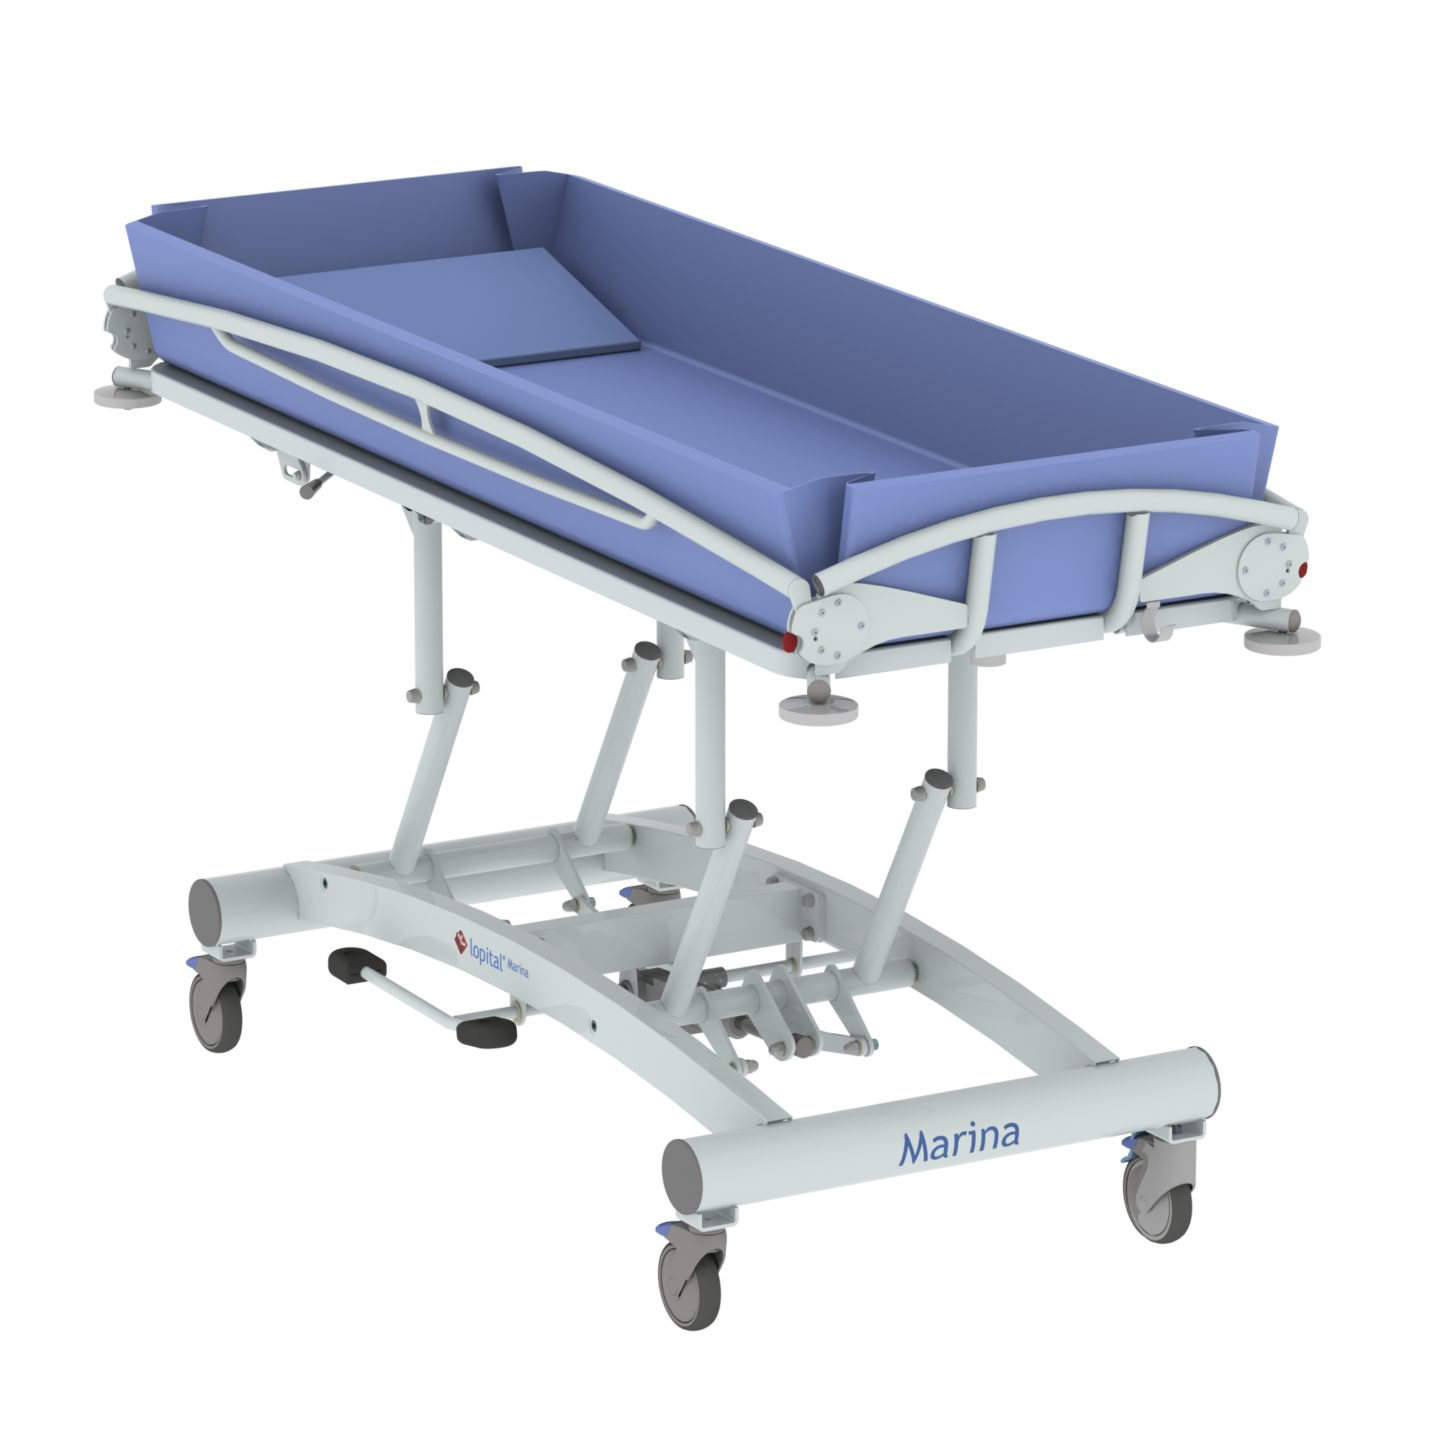 trolley safety for shower products bed web battery work with related test hygiene that disabled working showering all operated tr tasking assisted meets multi your and a needs